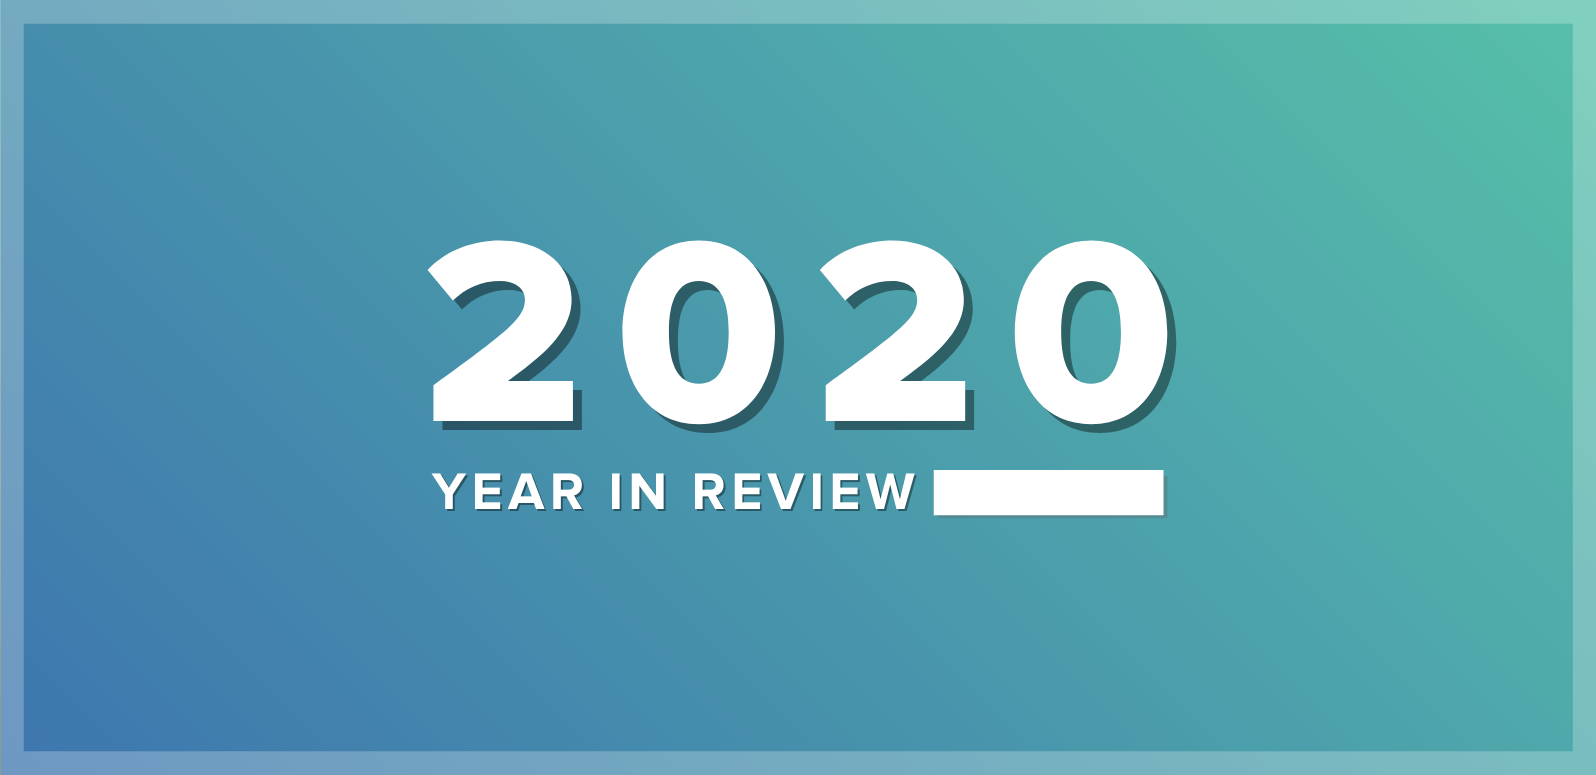 1,250 Features & Updates, 17 New Hires + More: 2020 Highlights